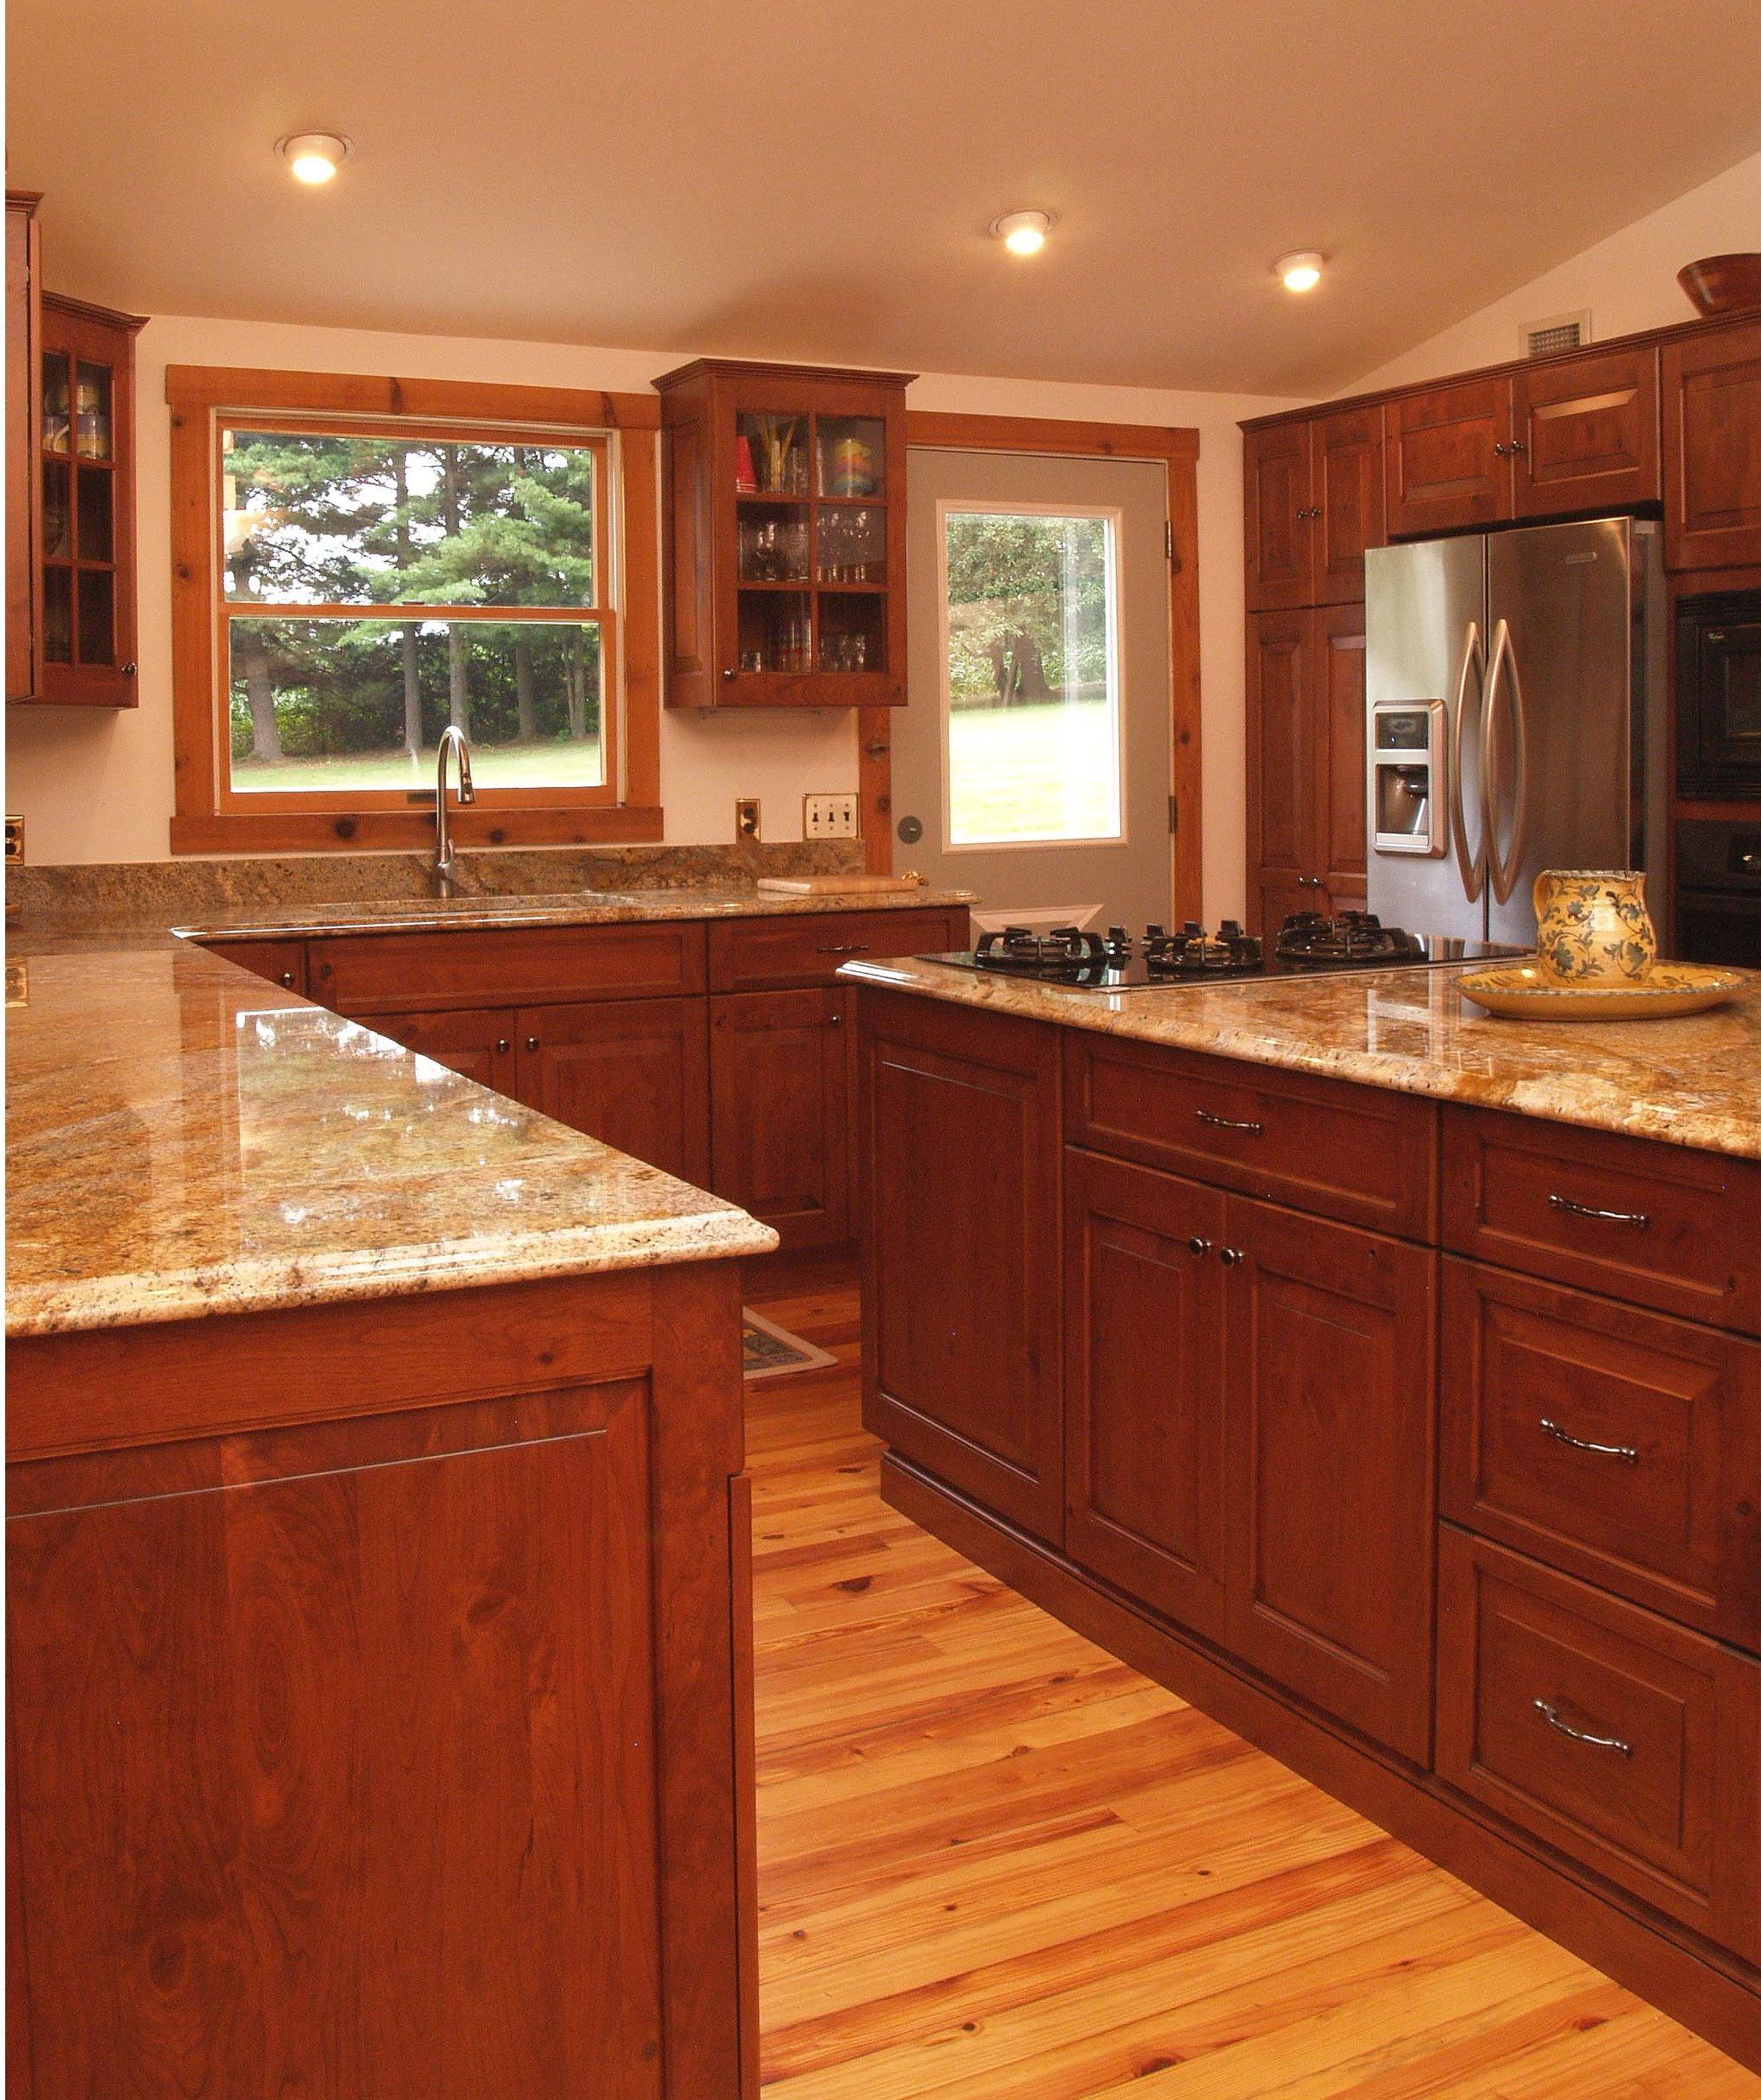 Log Cabin Style With Modern Comforts Yes Please Cabinets And Island Are Cherry Wood And The Coun Cherry Wood Kitchens Custom Kitchen Cabinets Rustic Kitchen